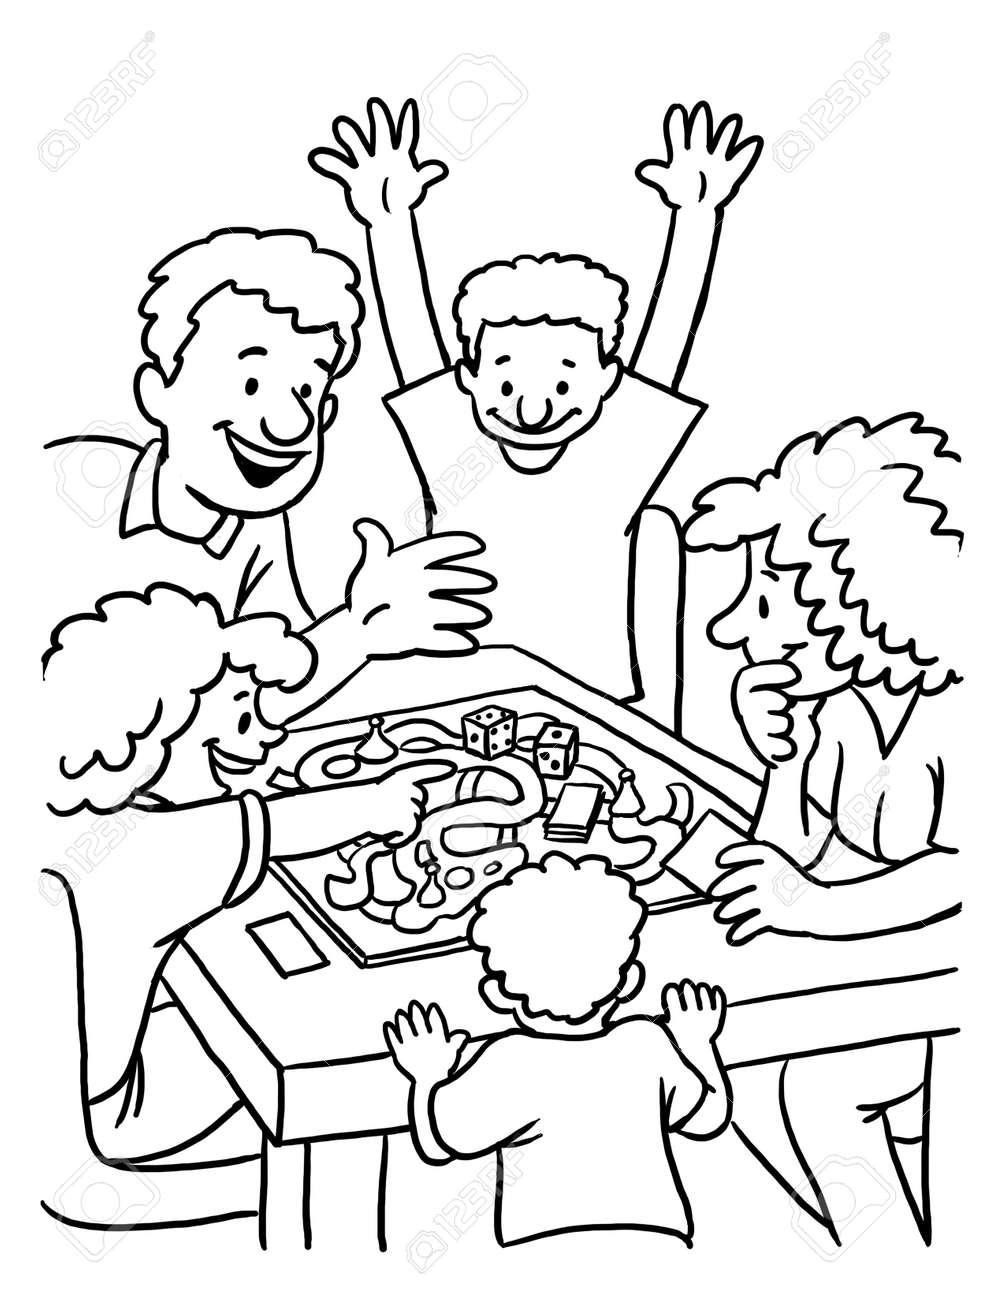 drawing games and coloring Coloring Page Of Family Playing Board Games